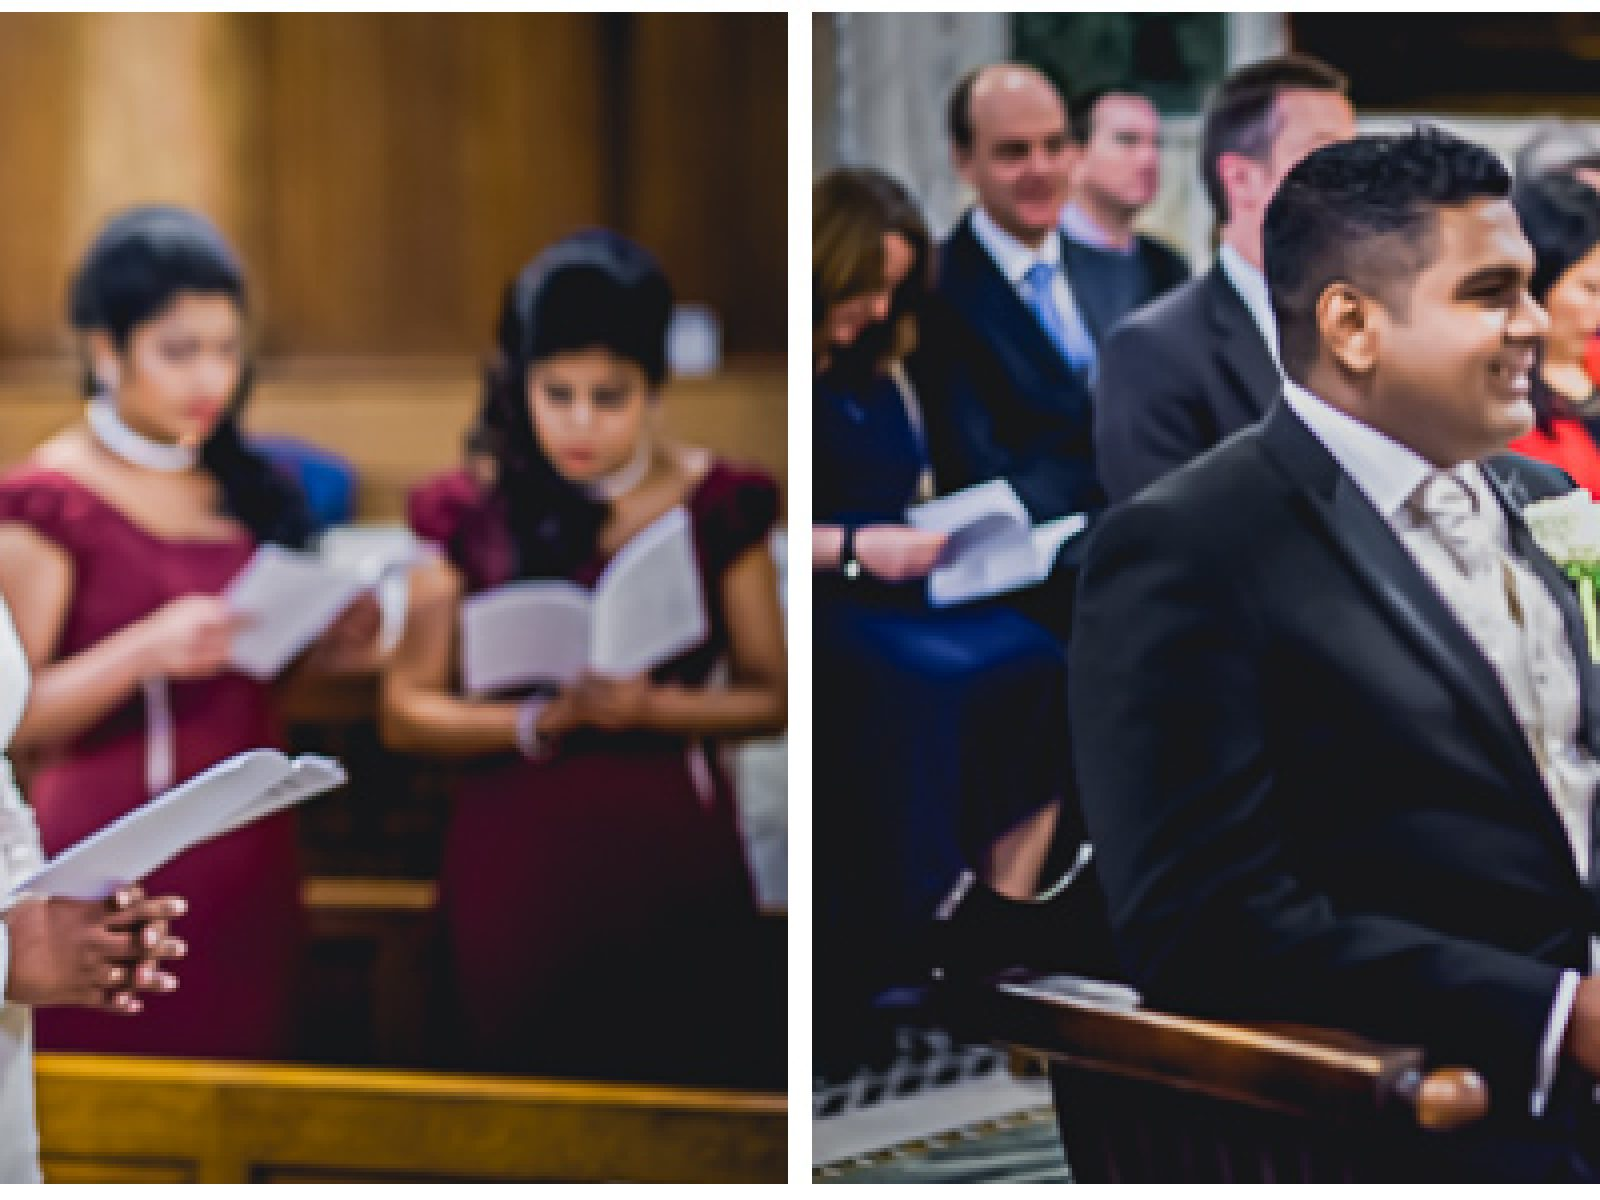 571 1600x1200 - Darshani and Anthony - wedding photographer in London